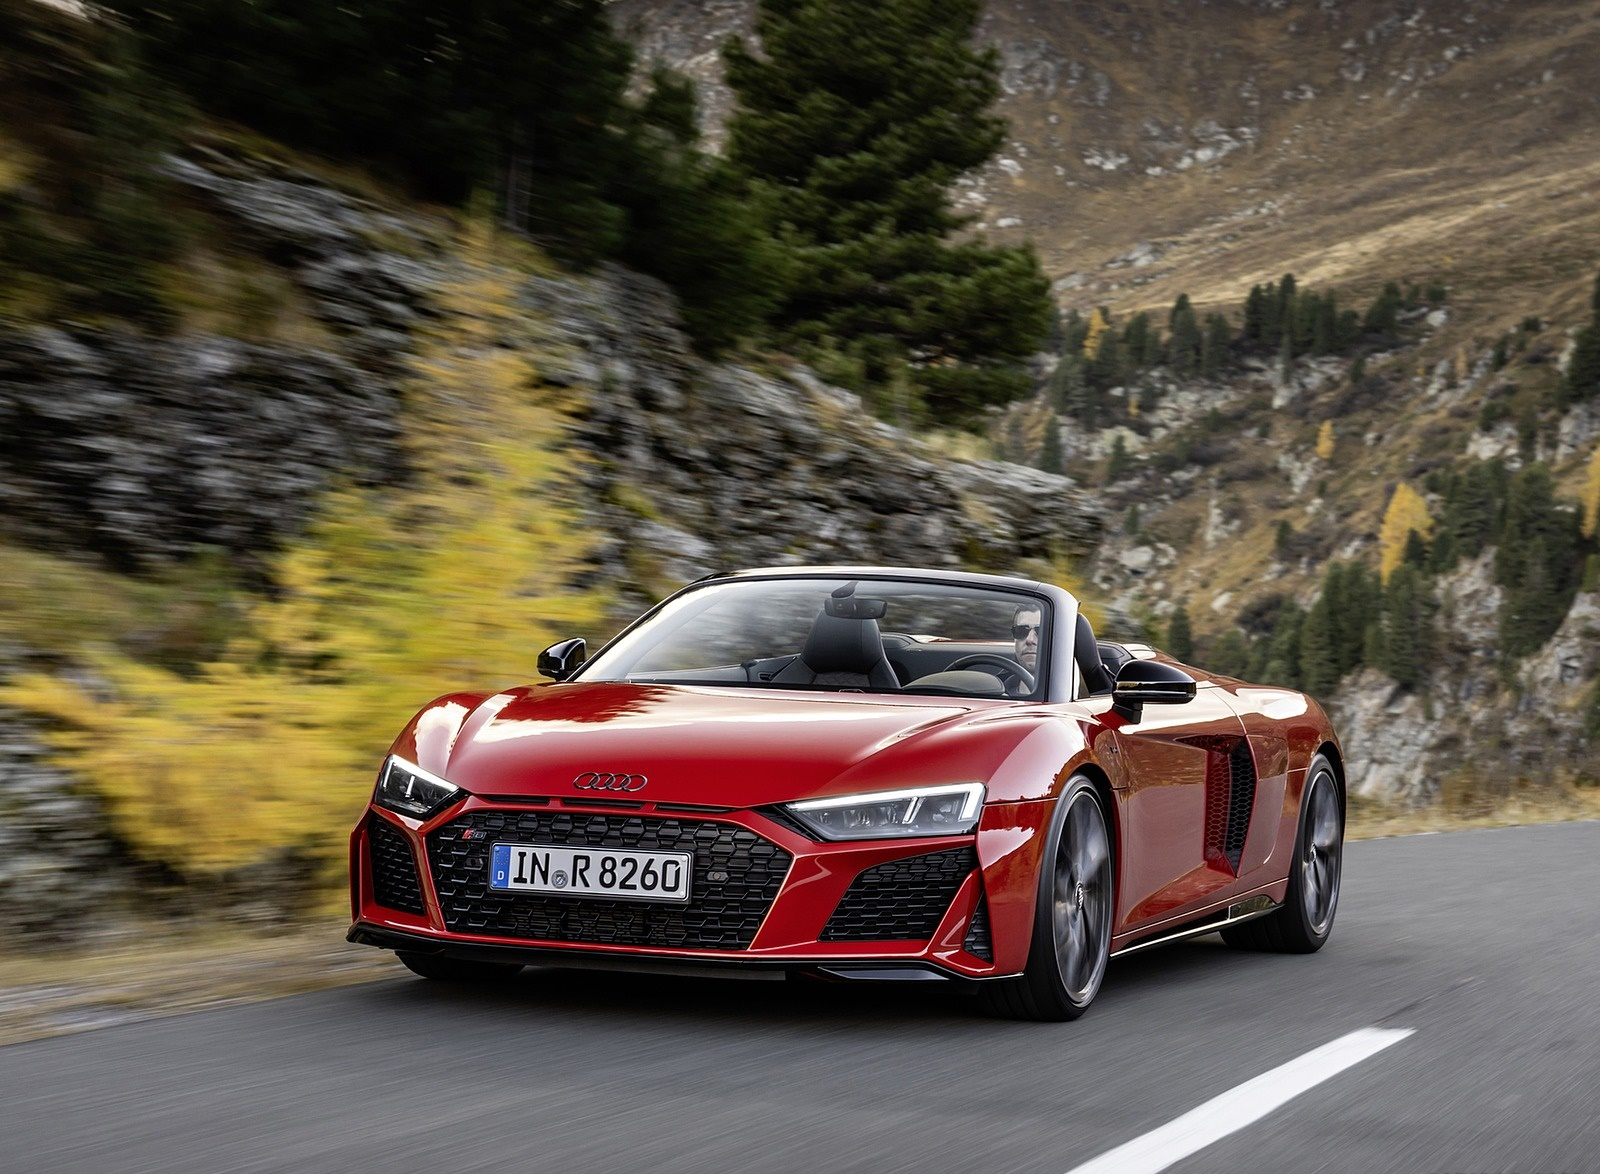 2020 Audi R8 V10 RWD Spyder (Color: Tango Red) Front Three-Quarter Wallpapers (1)